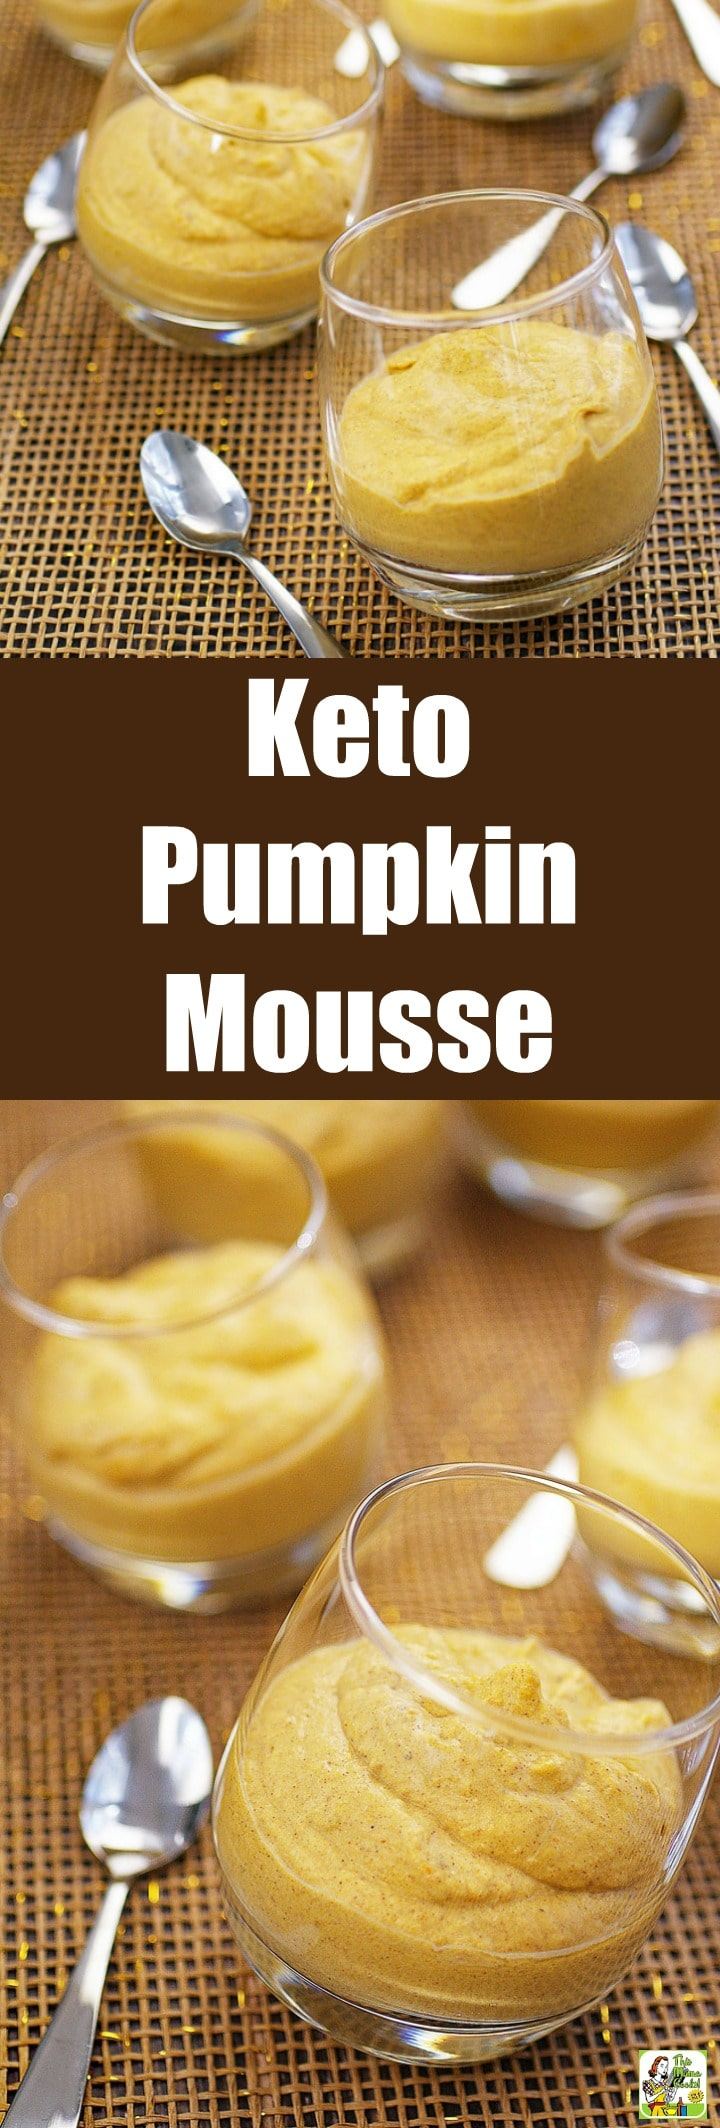 Keto Pumpkin Mousse Recipe